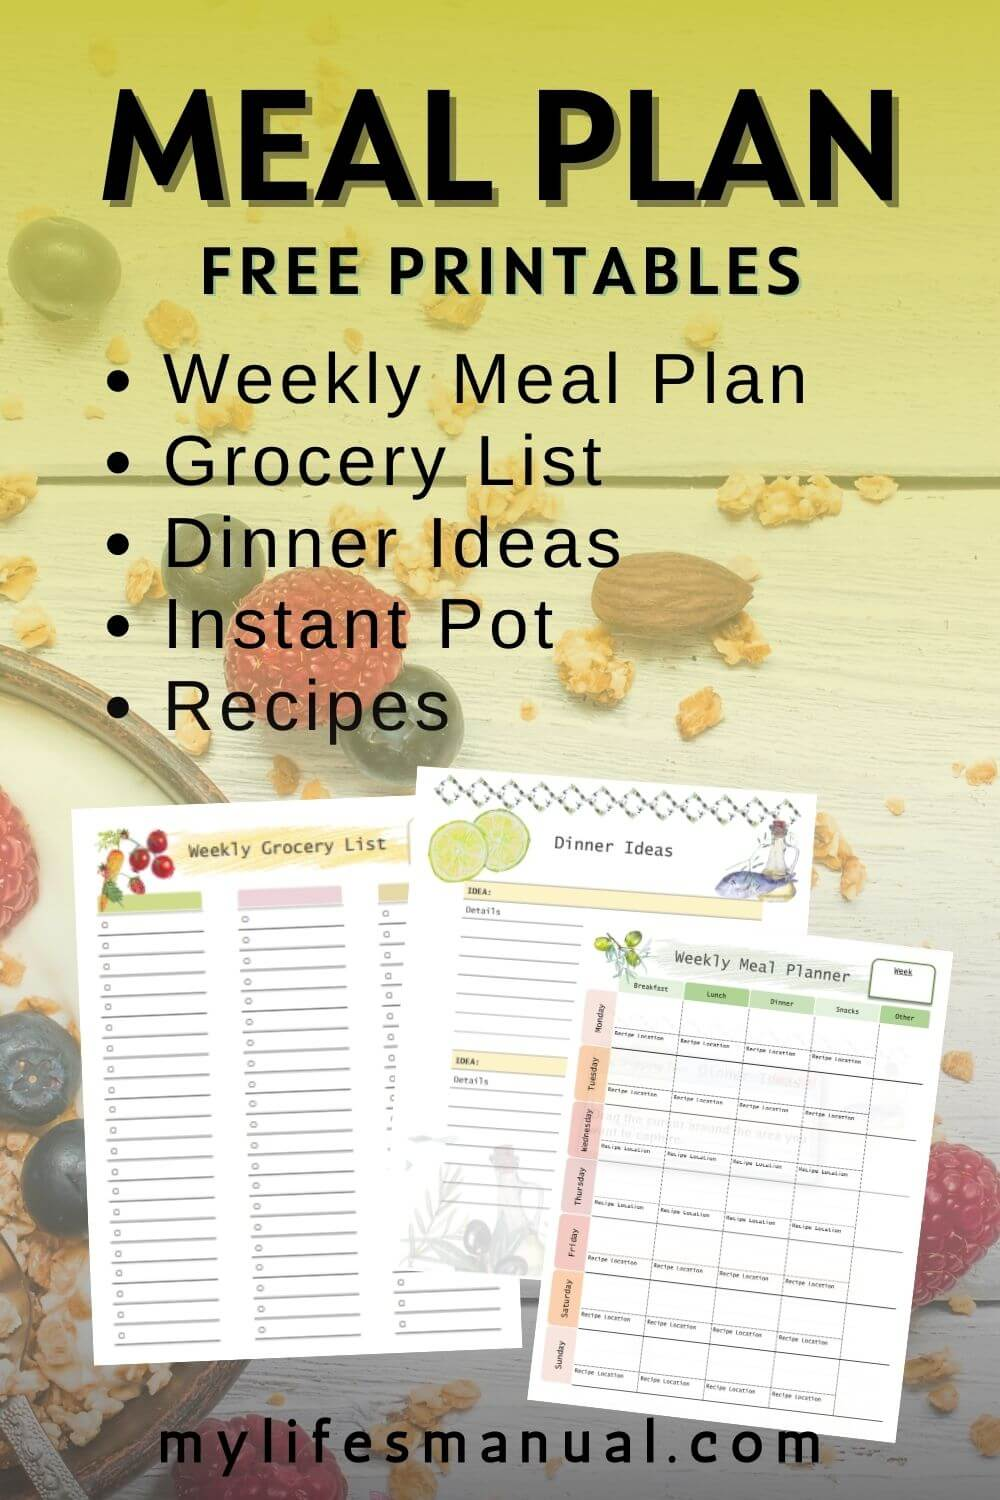 Grab these free meal planning printables to ditch the overwhelm in planning your meals. This is perfect for beginners who want to get started with meal planning and reducing their food budget. You'll get a weekly meal planner, grocery list and recipes.